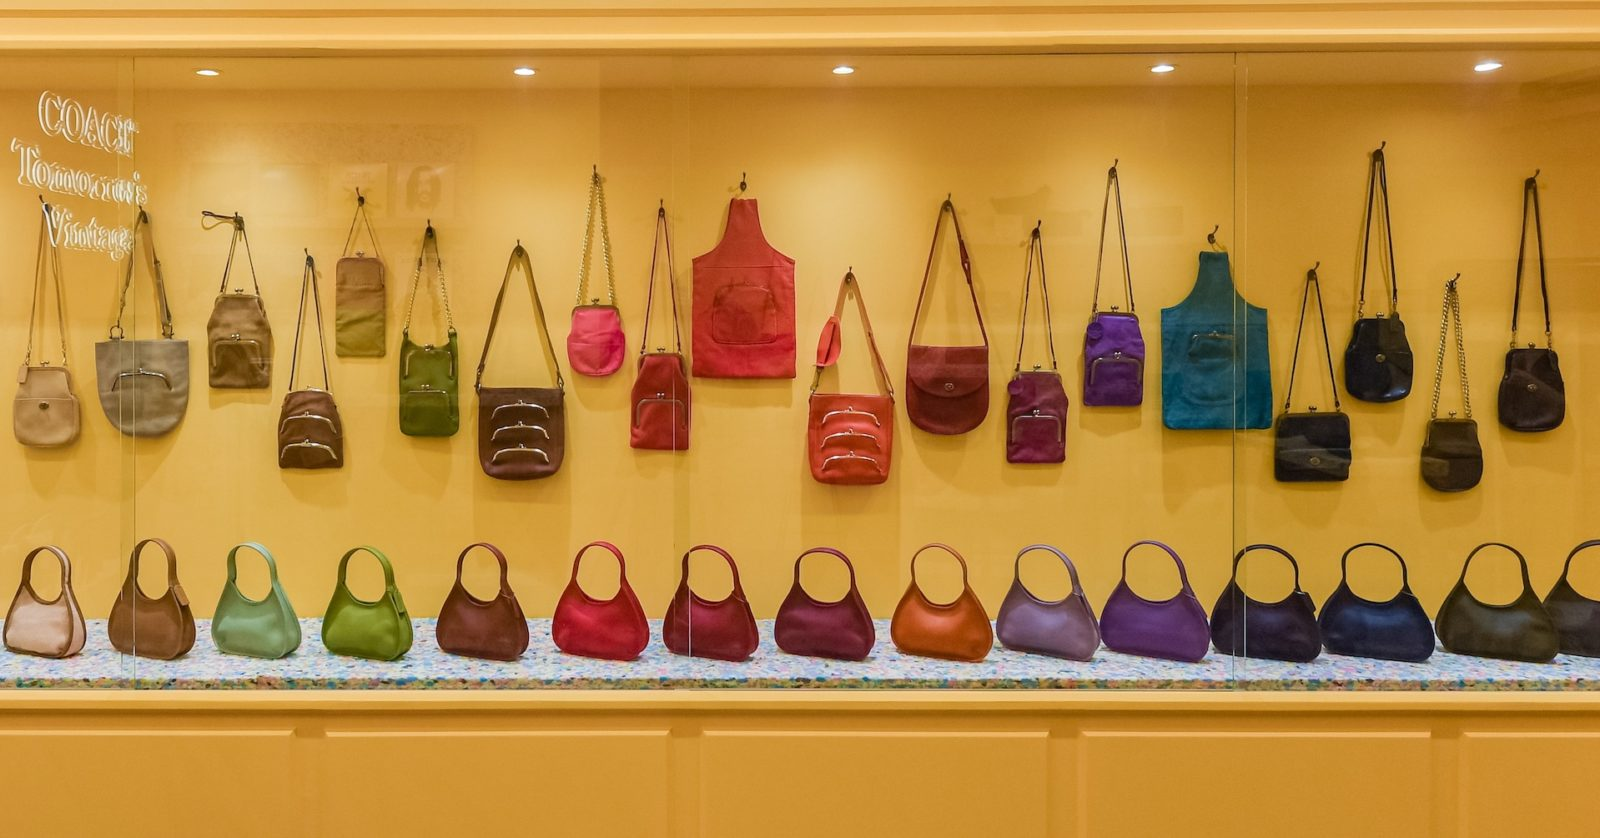 Coach brings vintage bags galore to its first pop-up store in Singapore